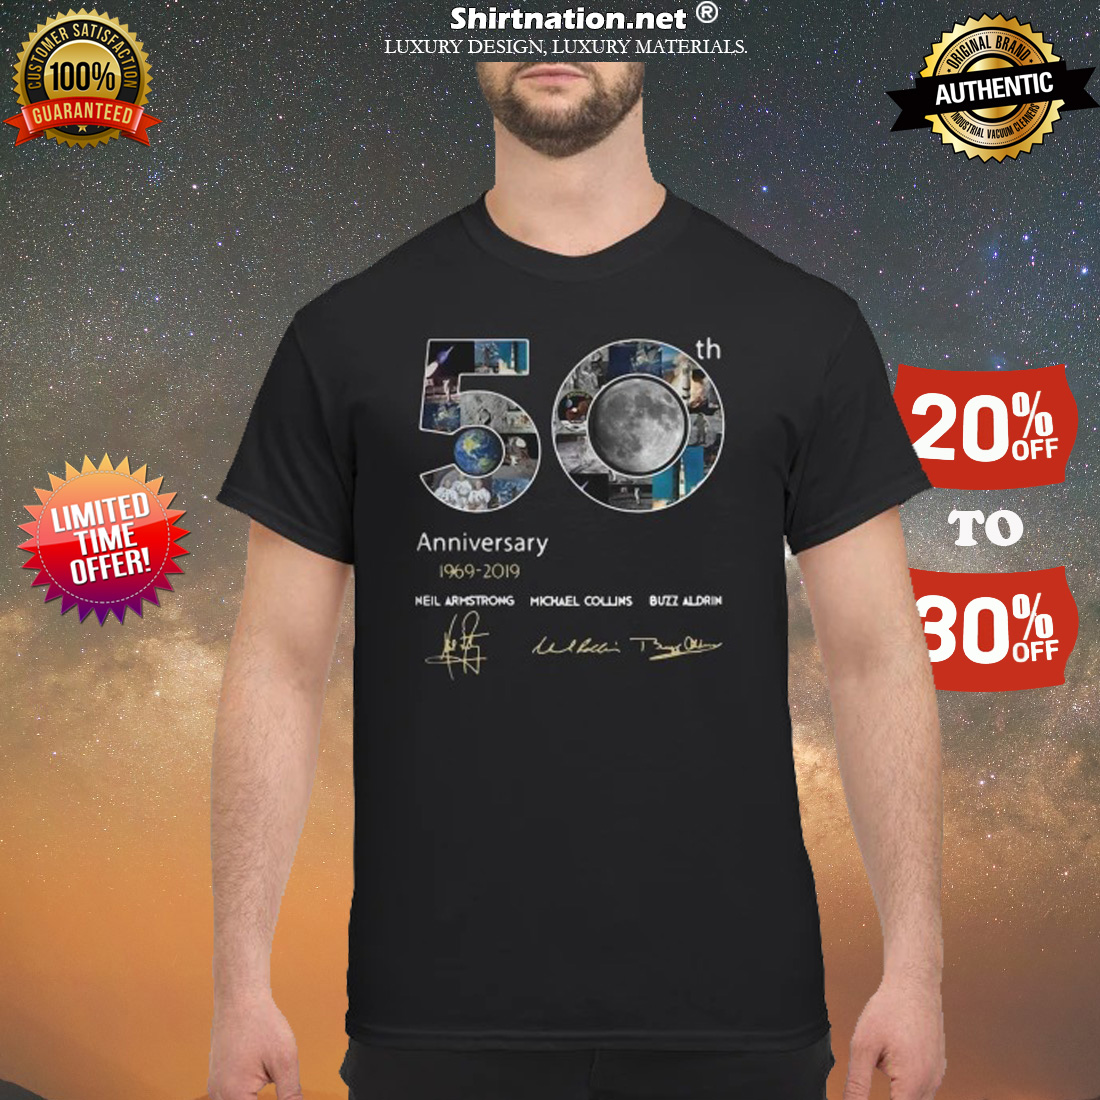 50th anniversary 1969 2019 Neil Armstrong Michael Collins Buzz Aldrin shirt